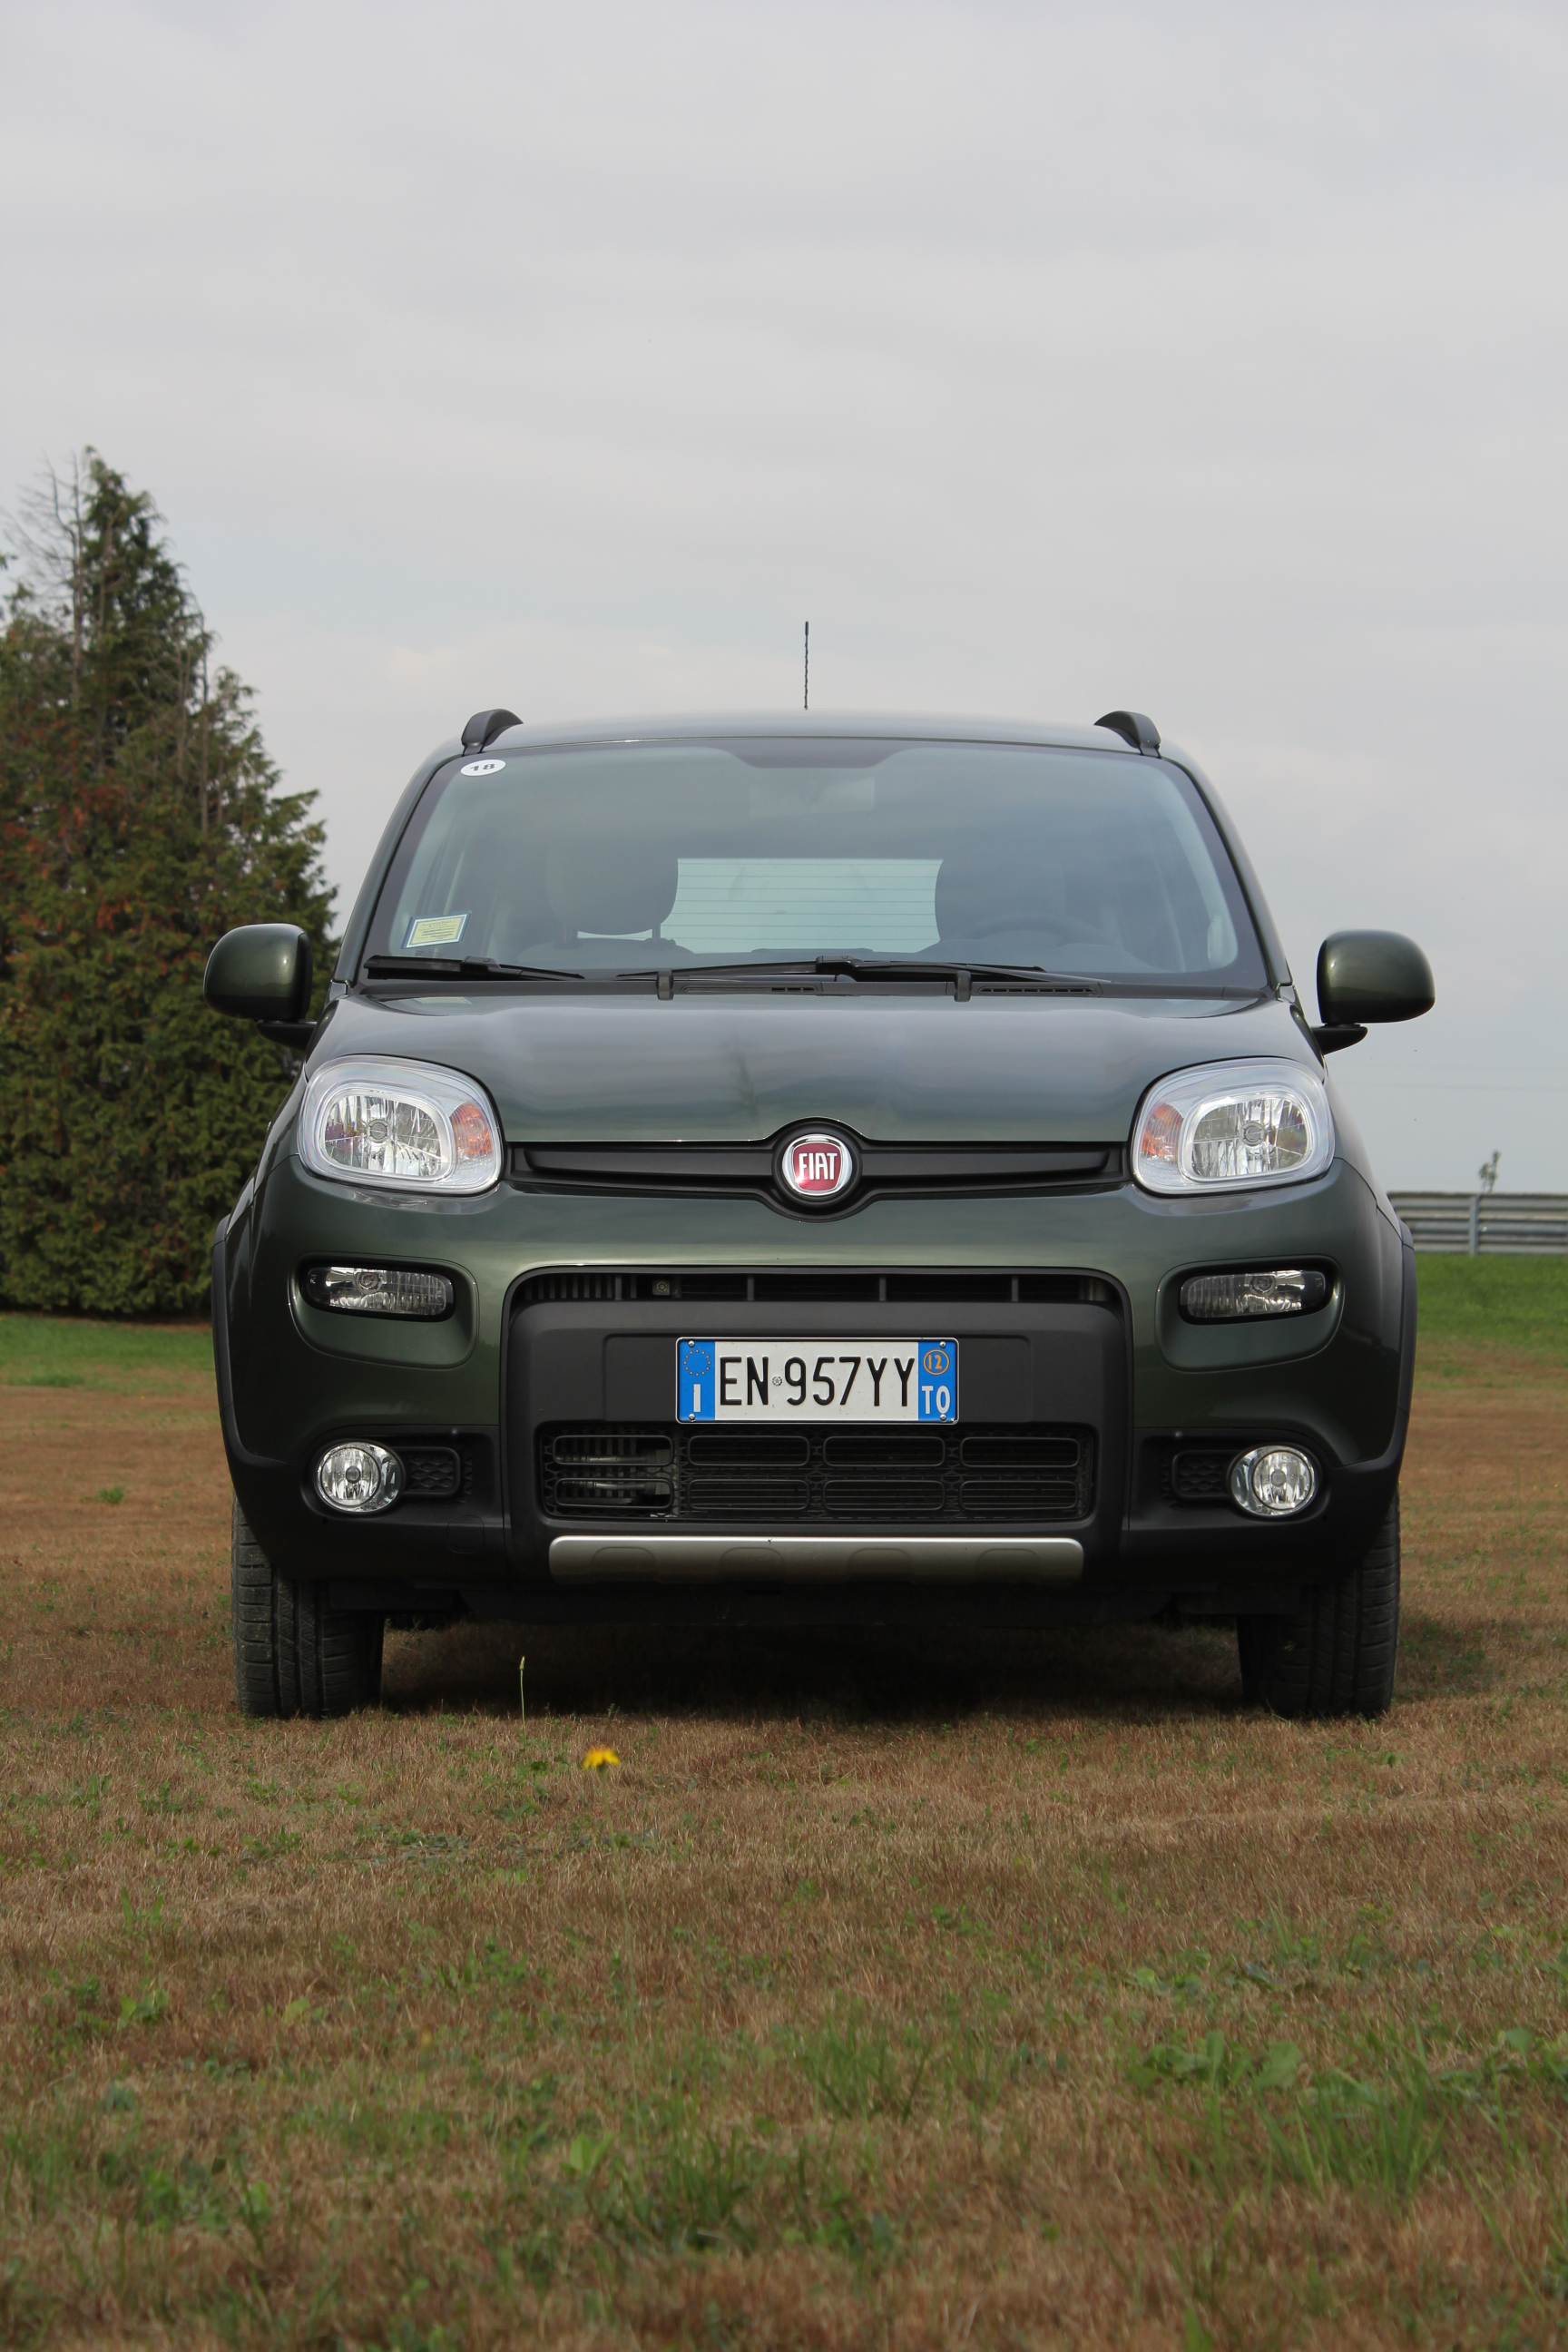 essai vid o fiat panda 4x4 petite mais costaud. Black Bedroom Furniture Sets. Home Design Ideas